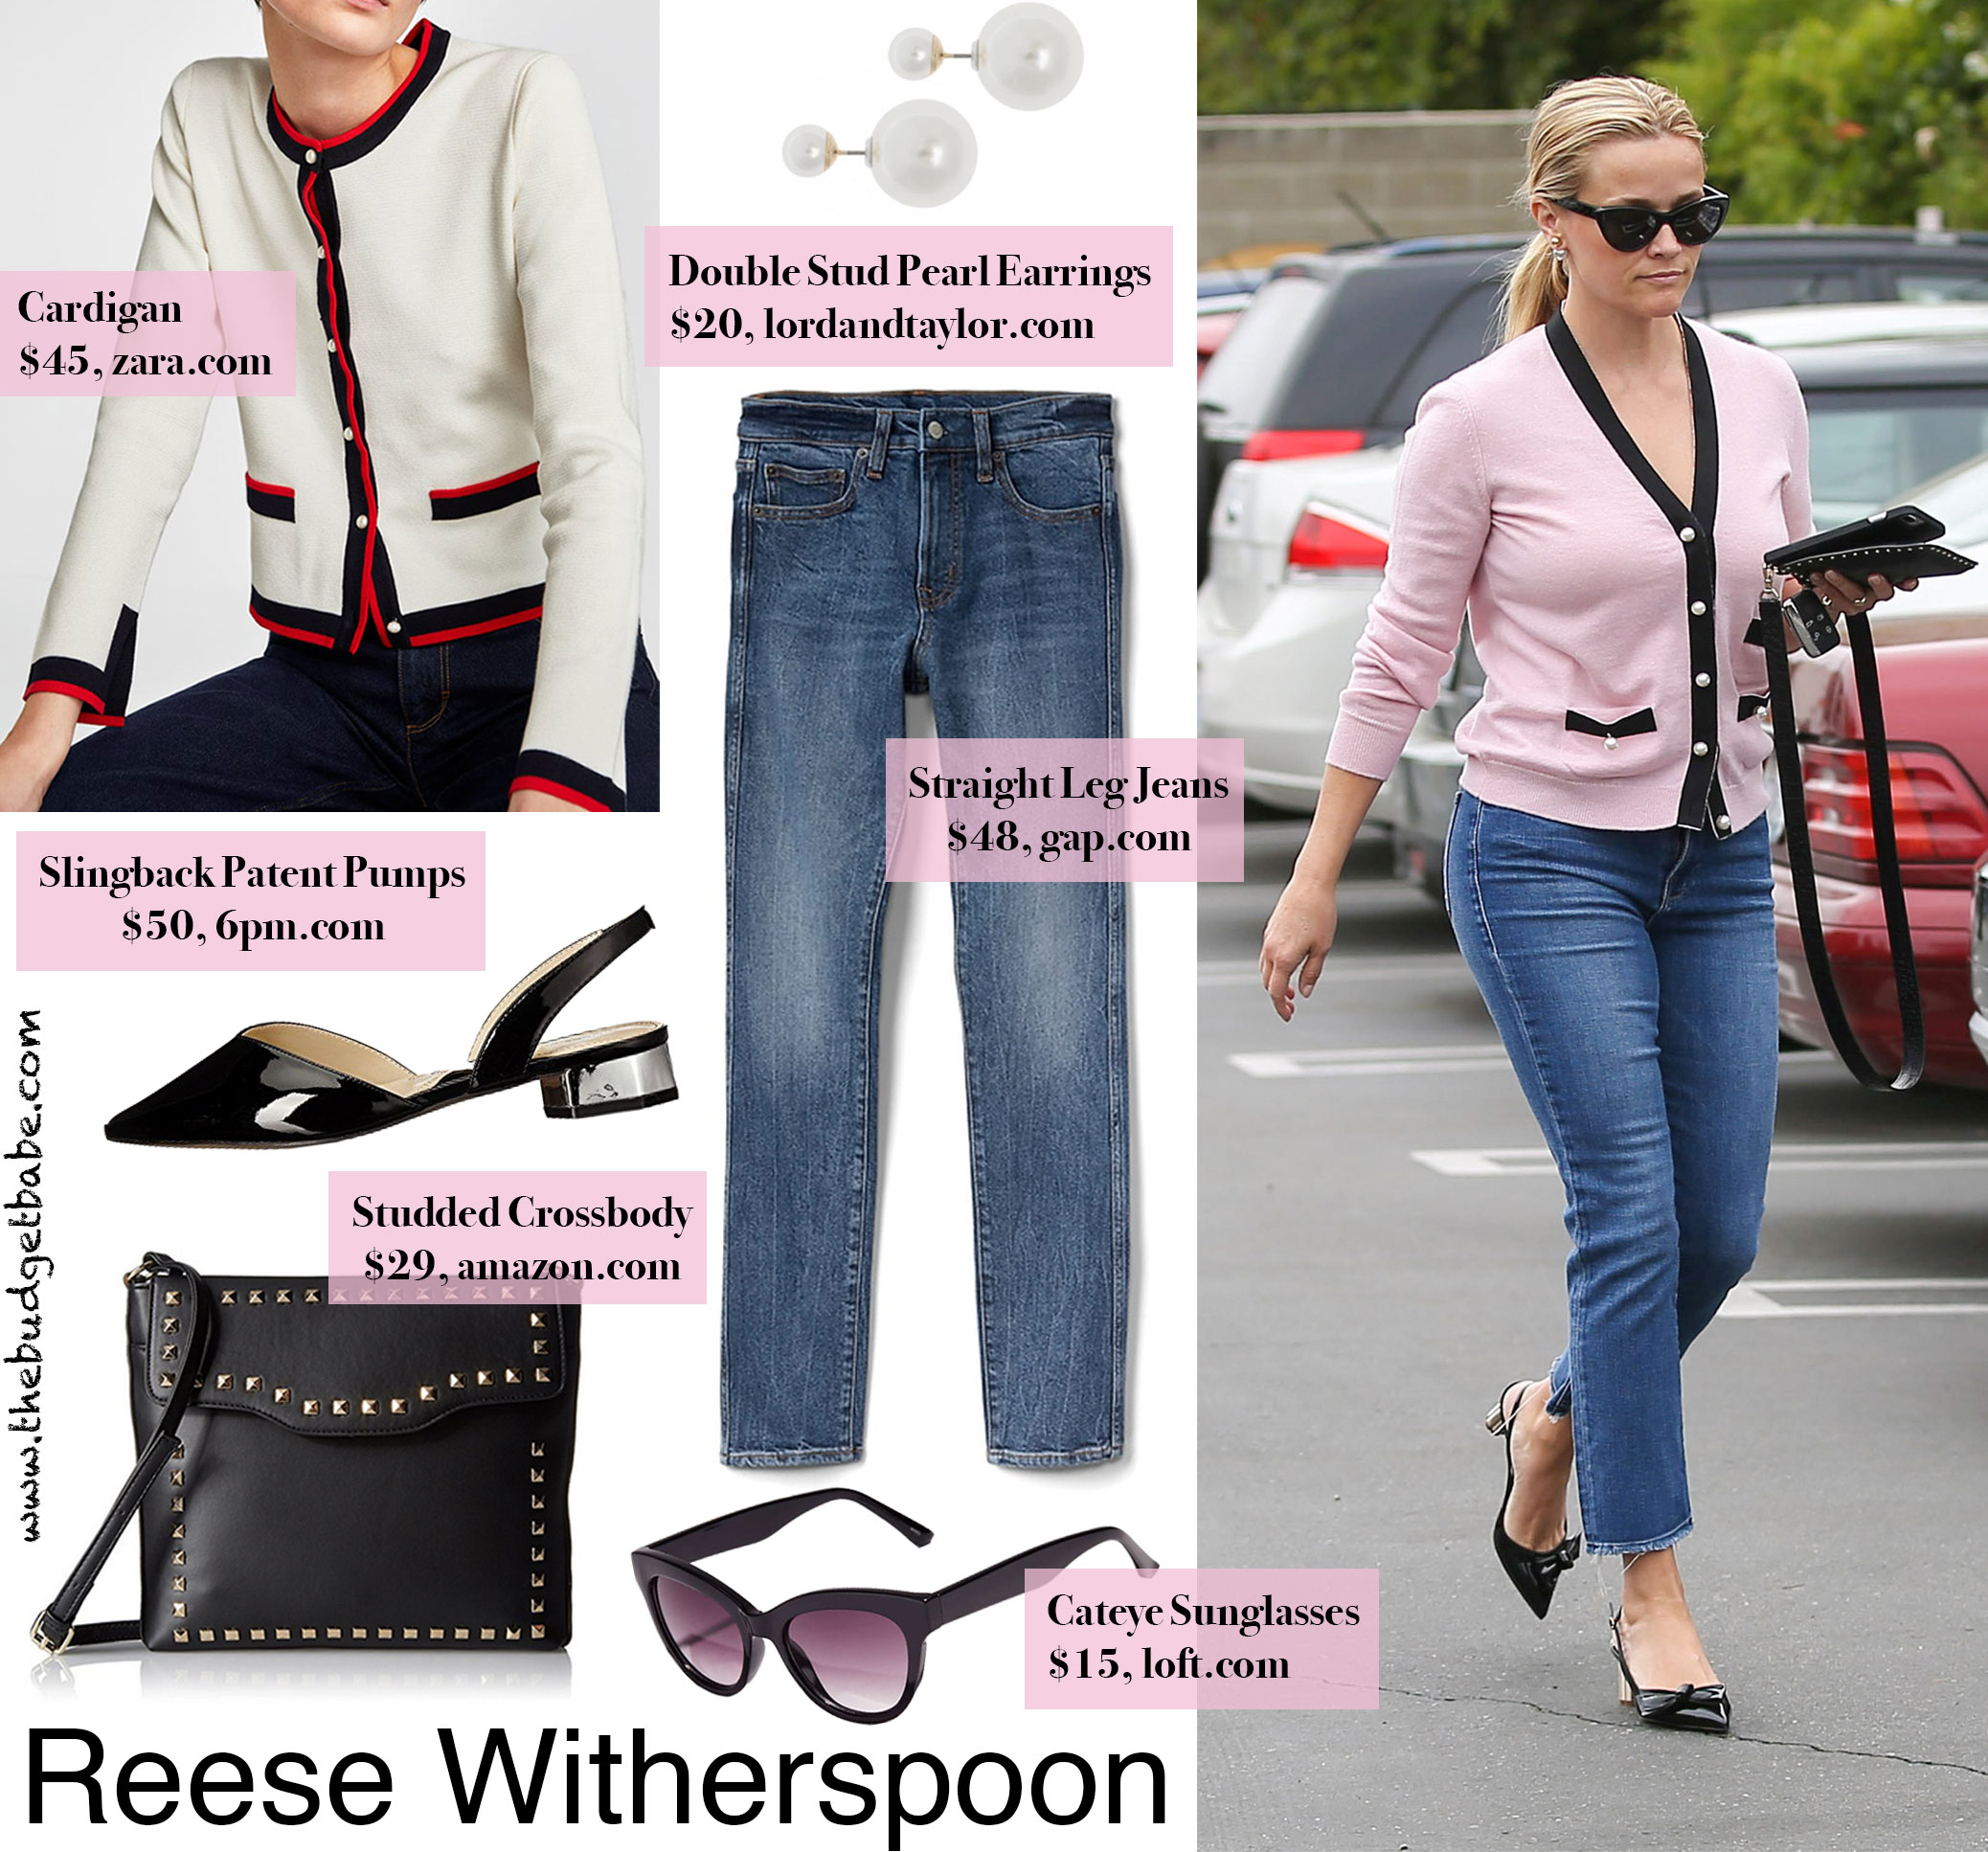 bfab3211a3 Reese Witherspoon Barneys Cardigan Look for Less